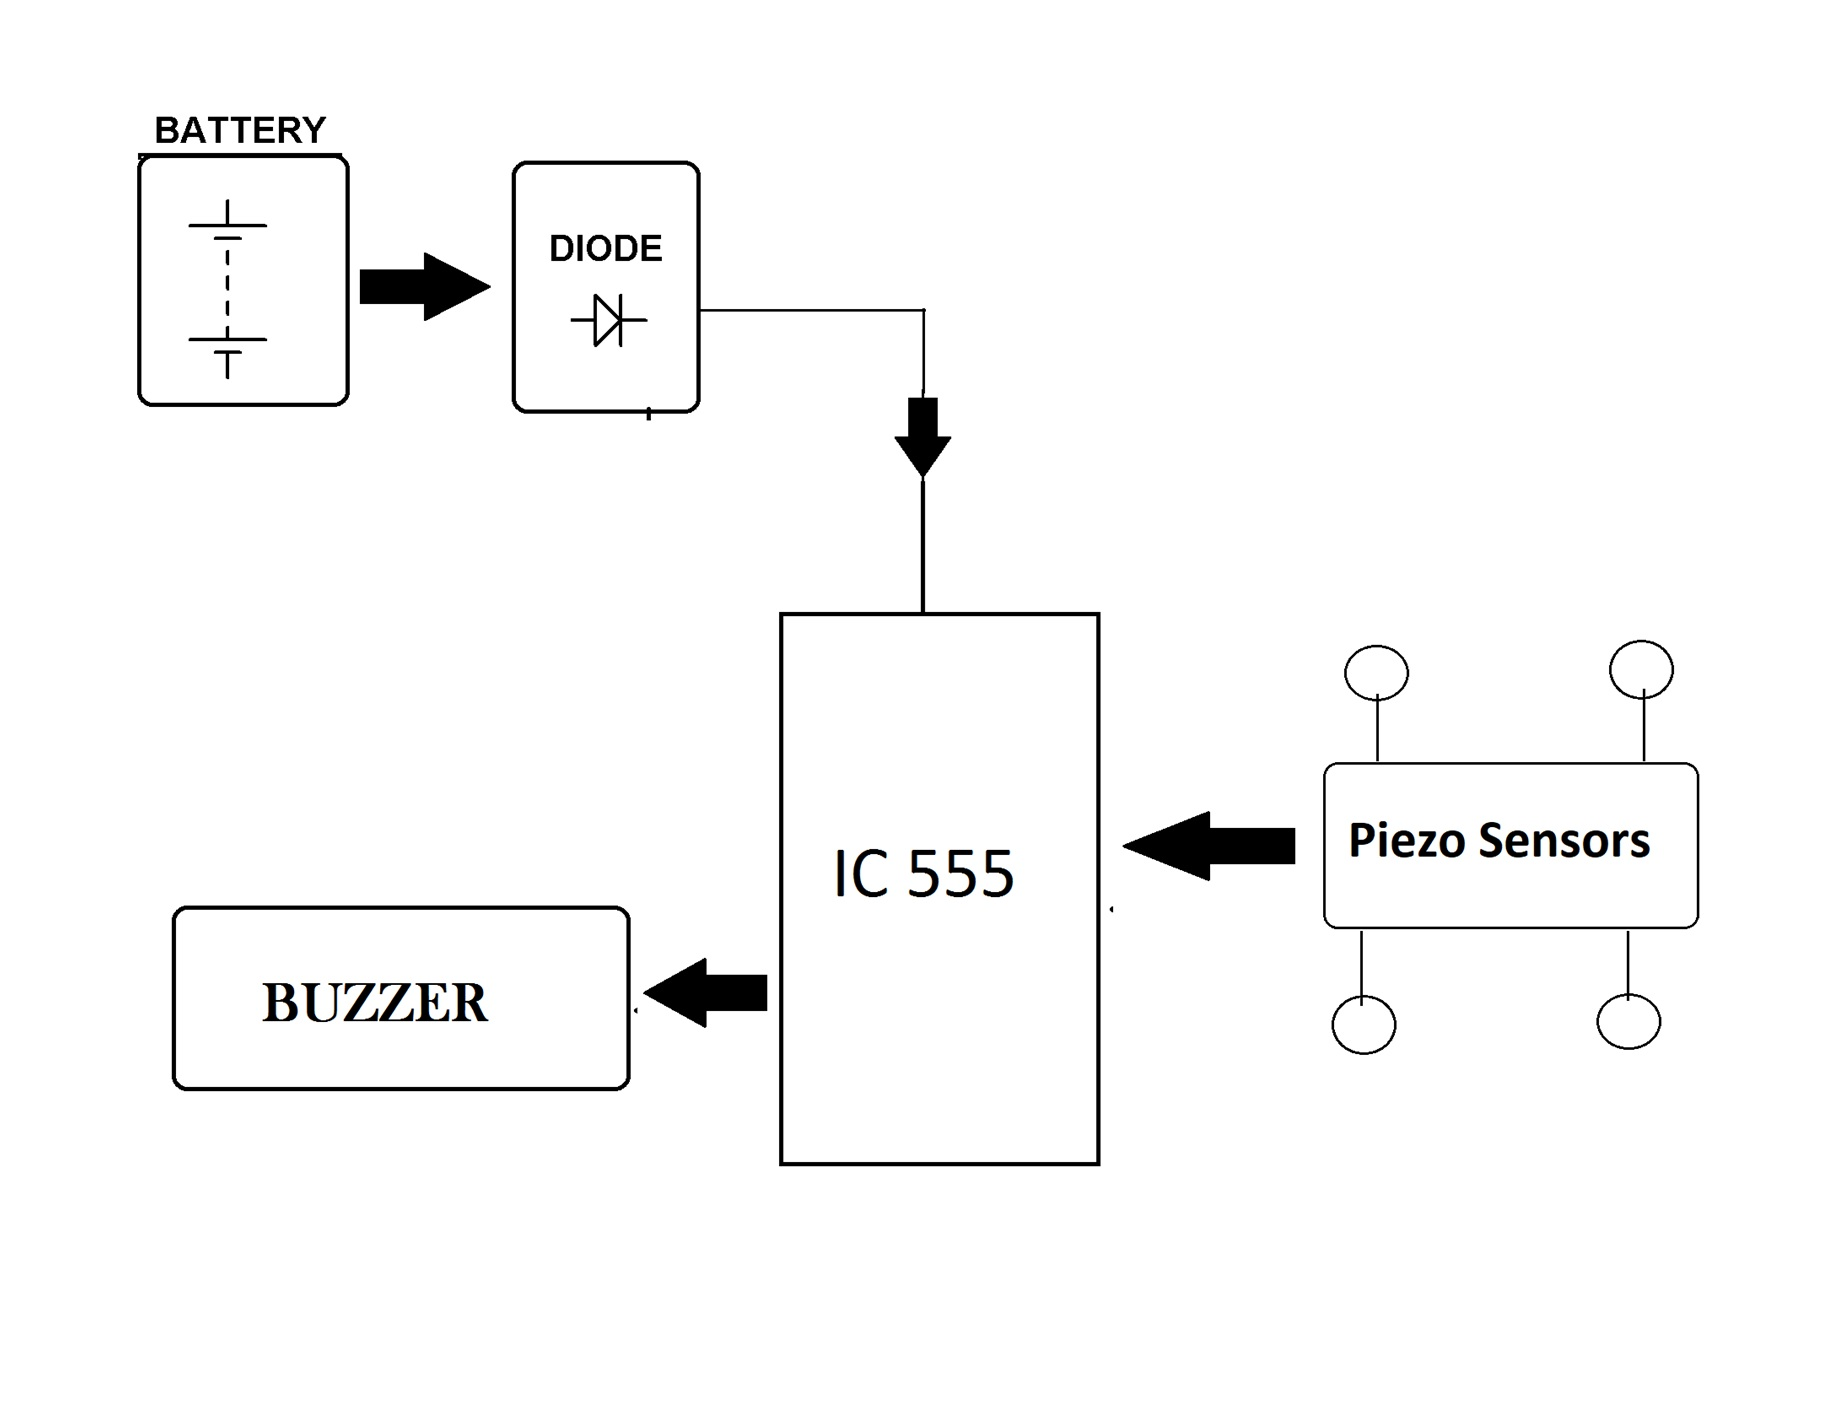 Cell phone jammer block diagram - detect a cell phone jammer